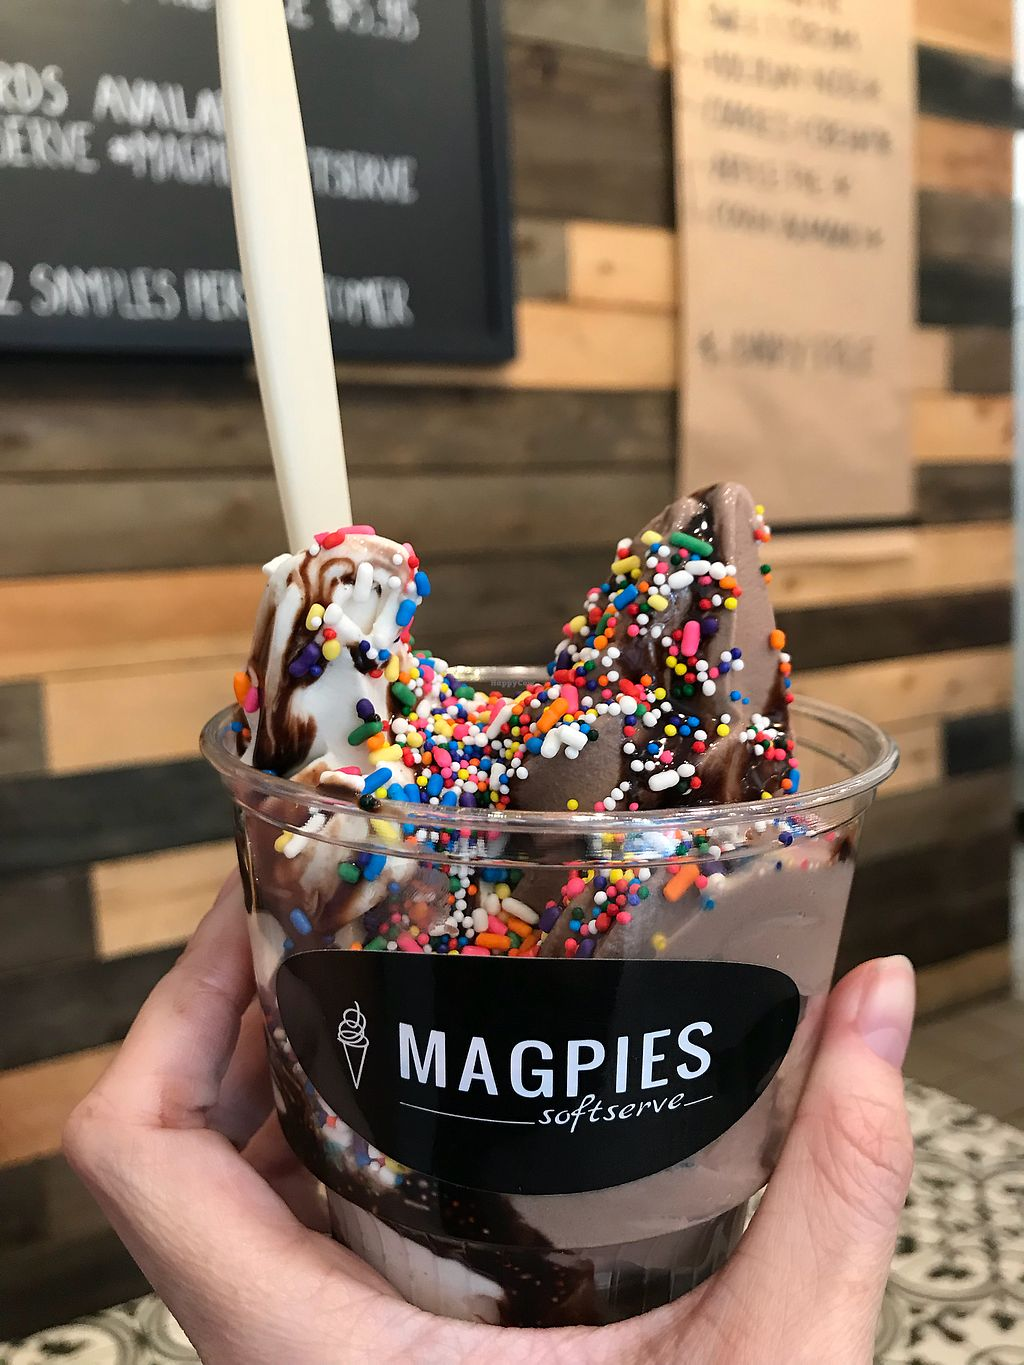 """Photo of Magpies Softserve  by <a href=""""/members/profile/shineonyou"""">shineonyou</a> <br/>Vegan soft serve  <br/> December 4, 2017  - <a href='/contact/abuse/image/76001/332170'>Report</a>"""